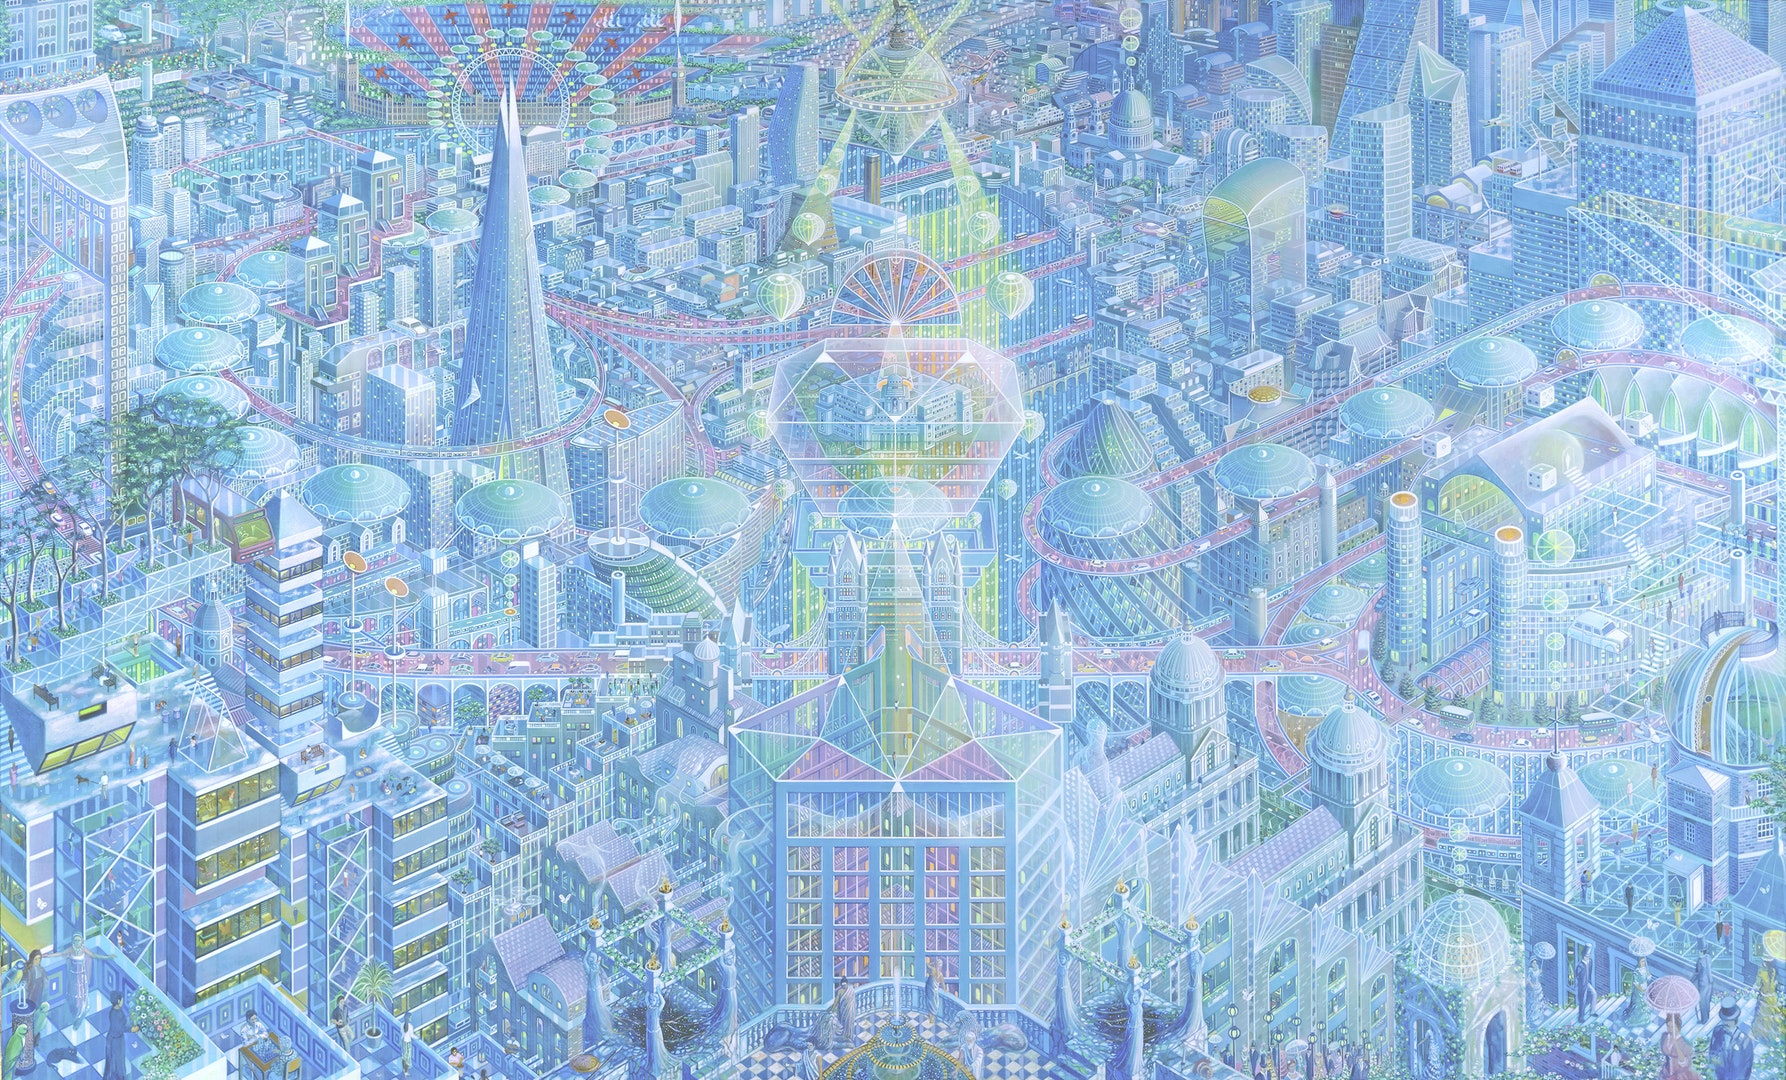 Caio Locke,  Metropolis London,  Acrylic on canvas,, 155 x 255 x 5 cm,  http://www.caiolocke.com